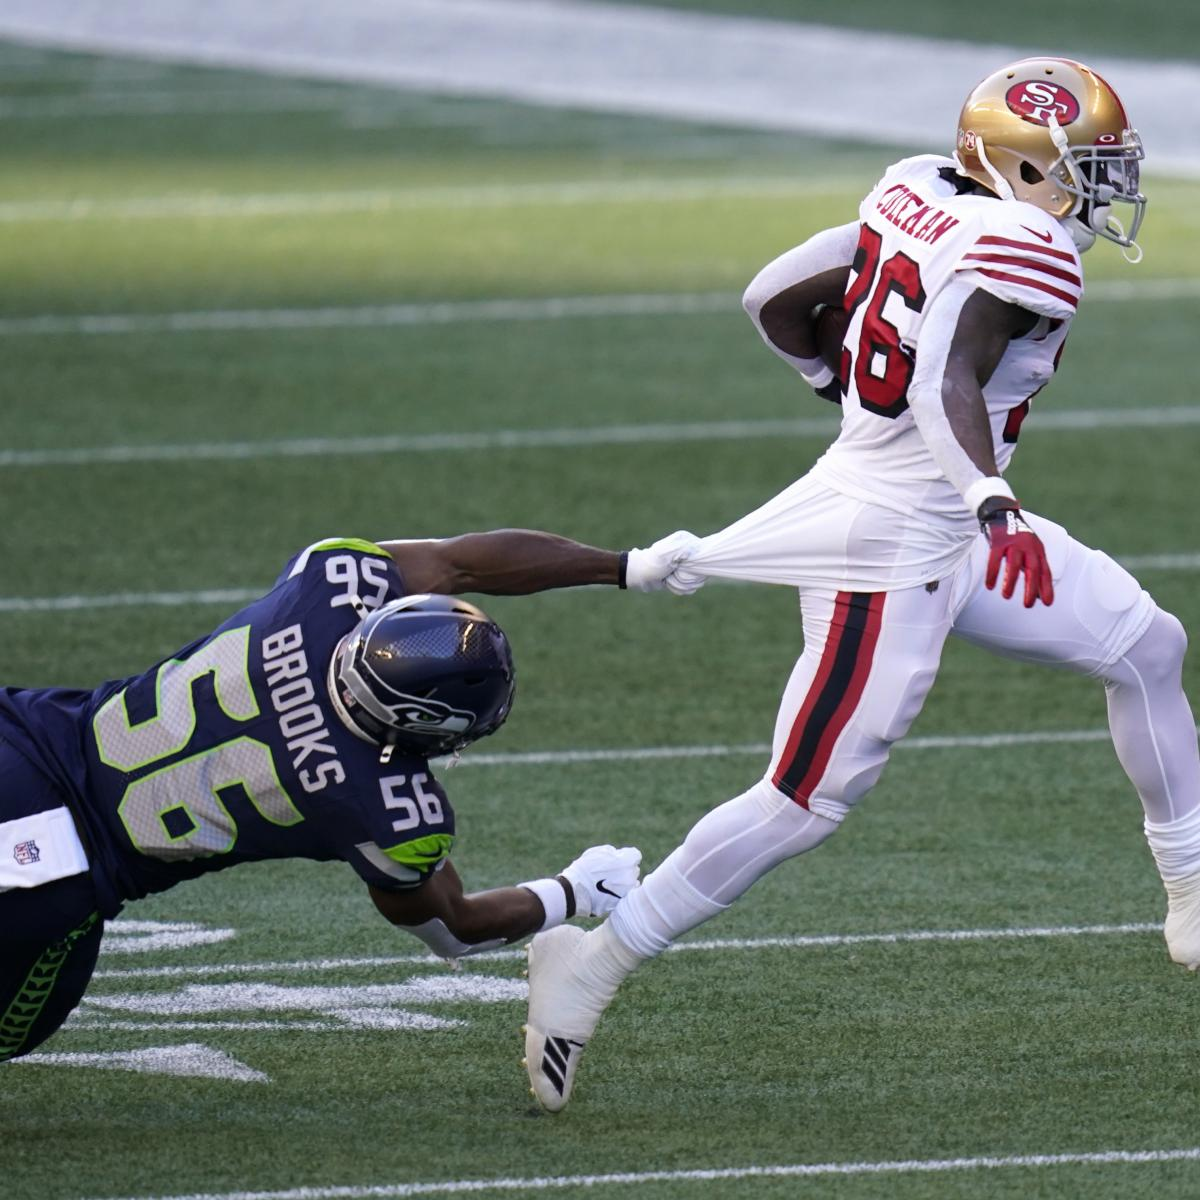 Tevin Coleman Ruled out for 49ers vs. Seahawks with Knee Injury